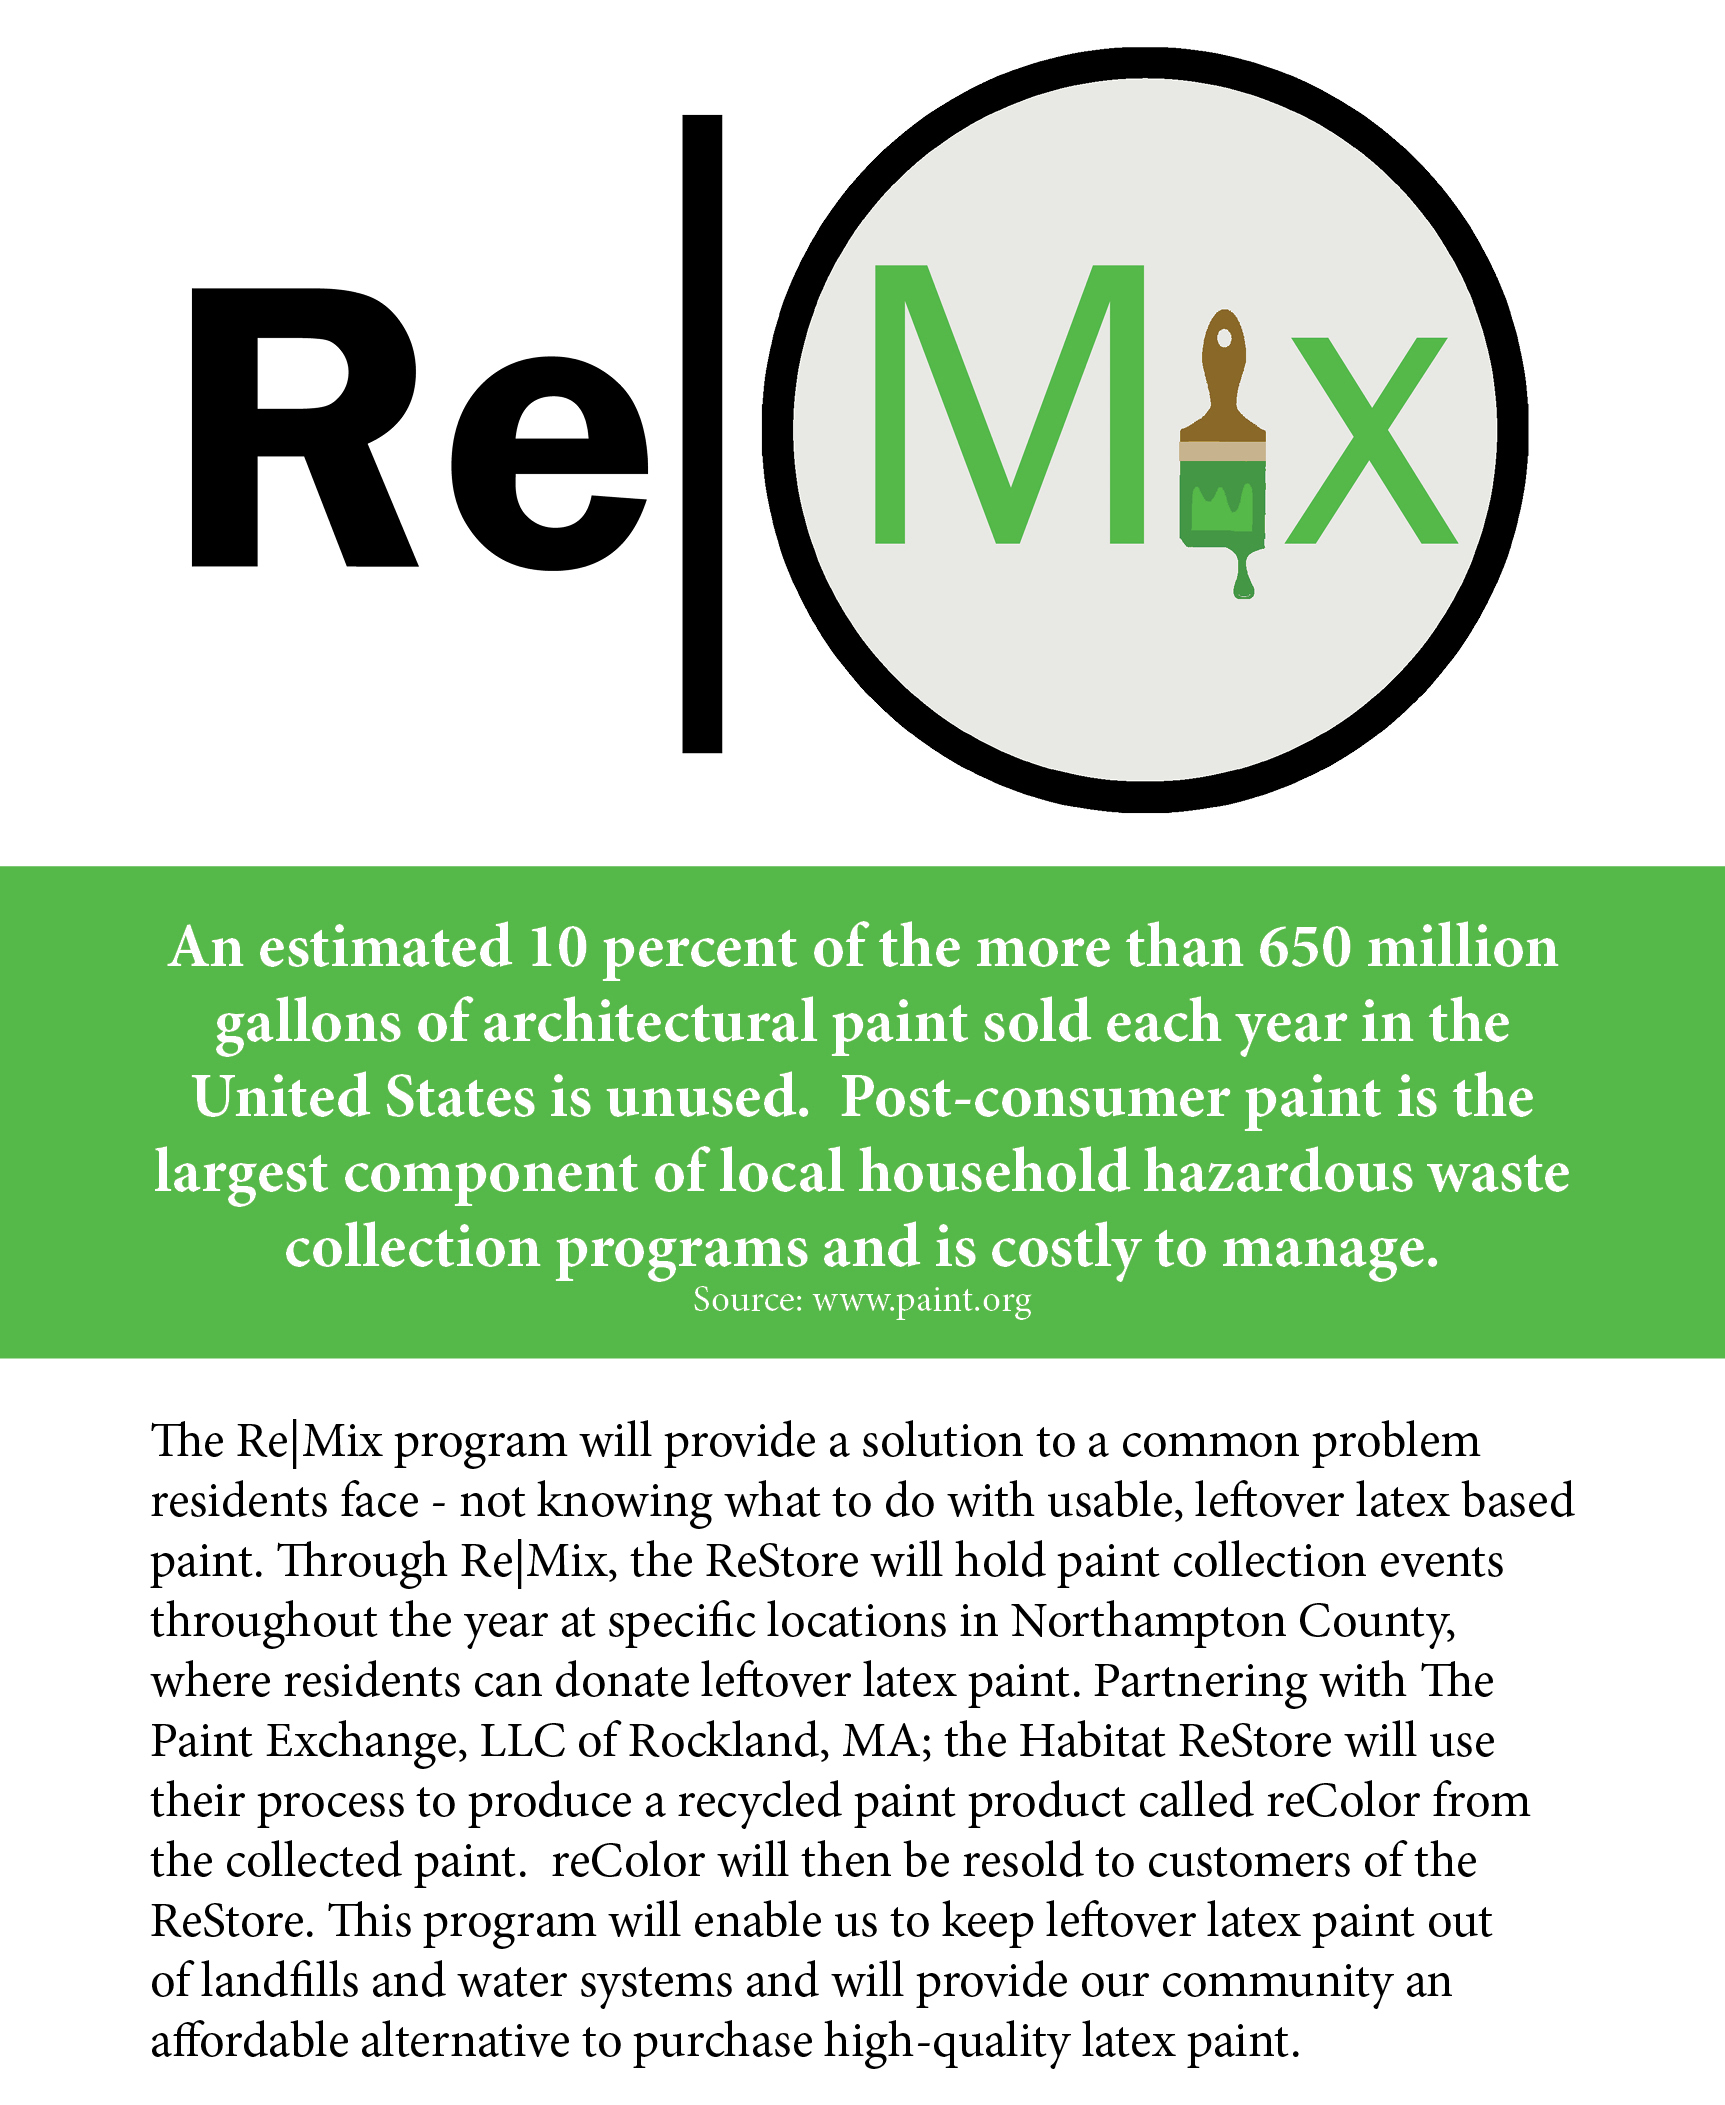 reColor paint recycling